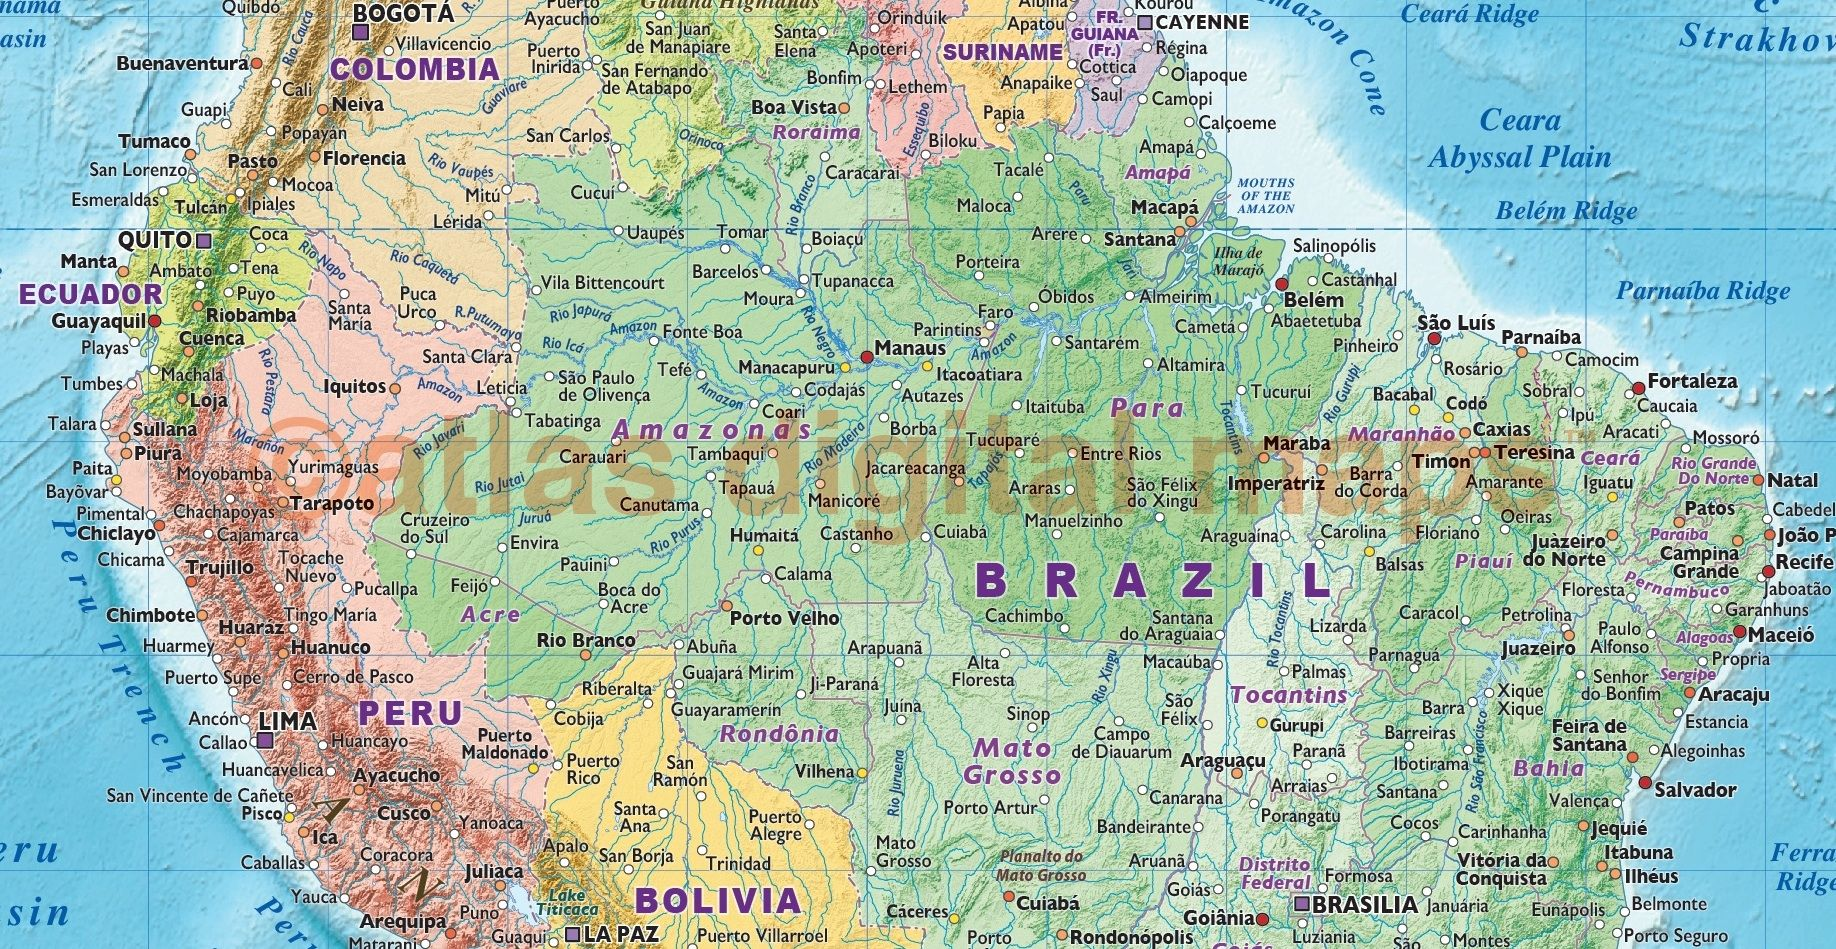 Political Map Of Brazil And Central South America In Bright - Political map of brazil